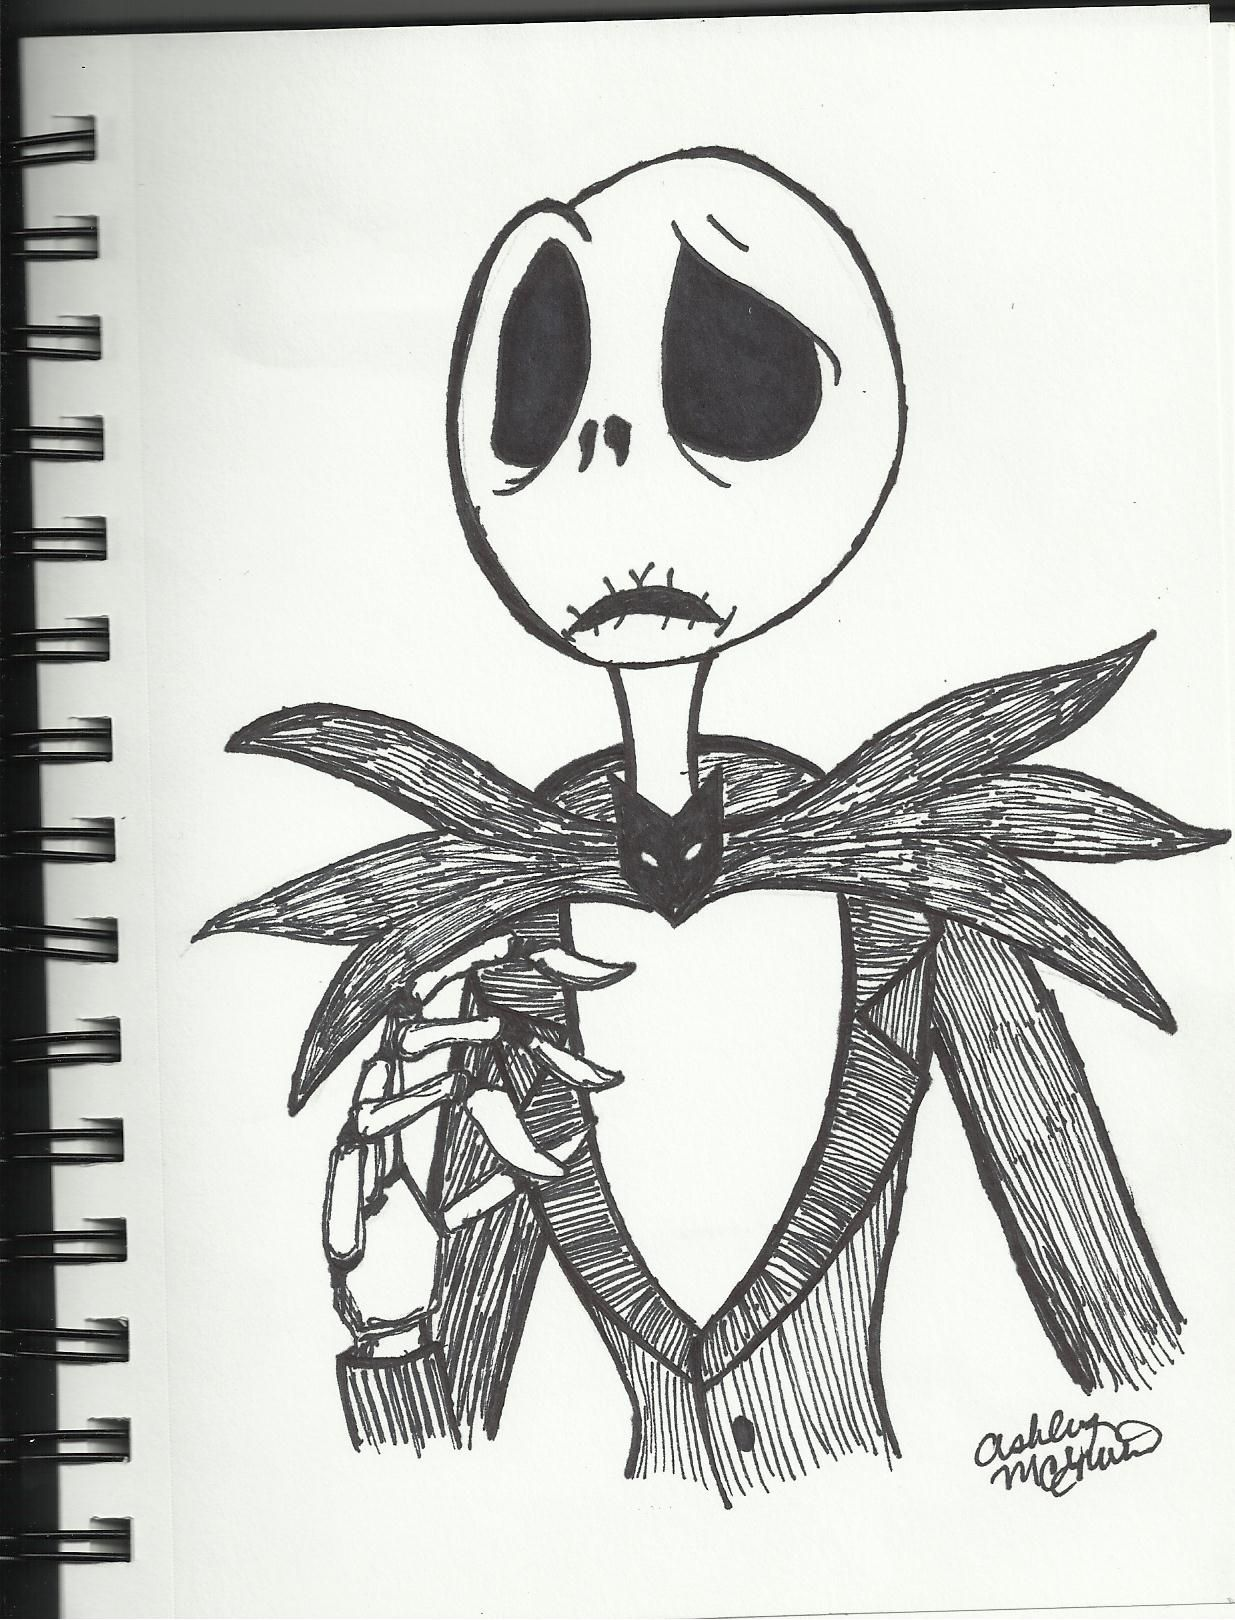 Pin by Vitalclipzyt on Drawings Nightmare before